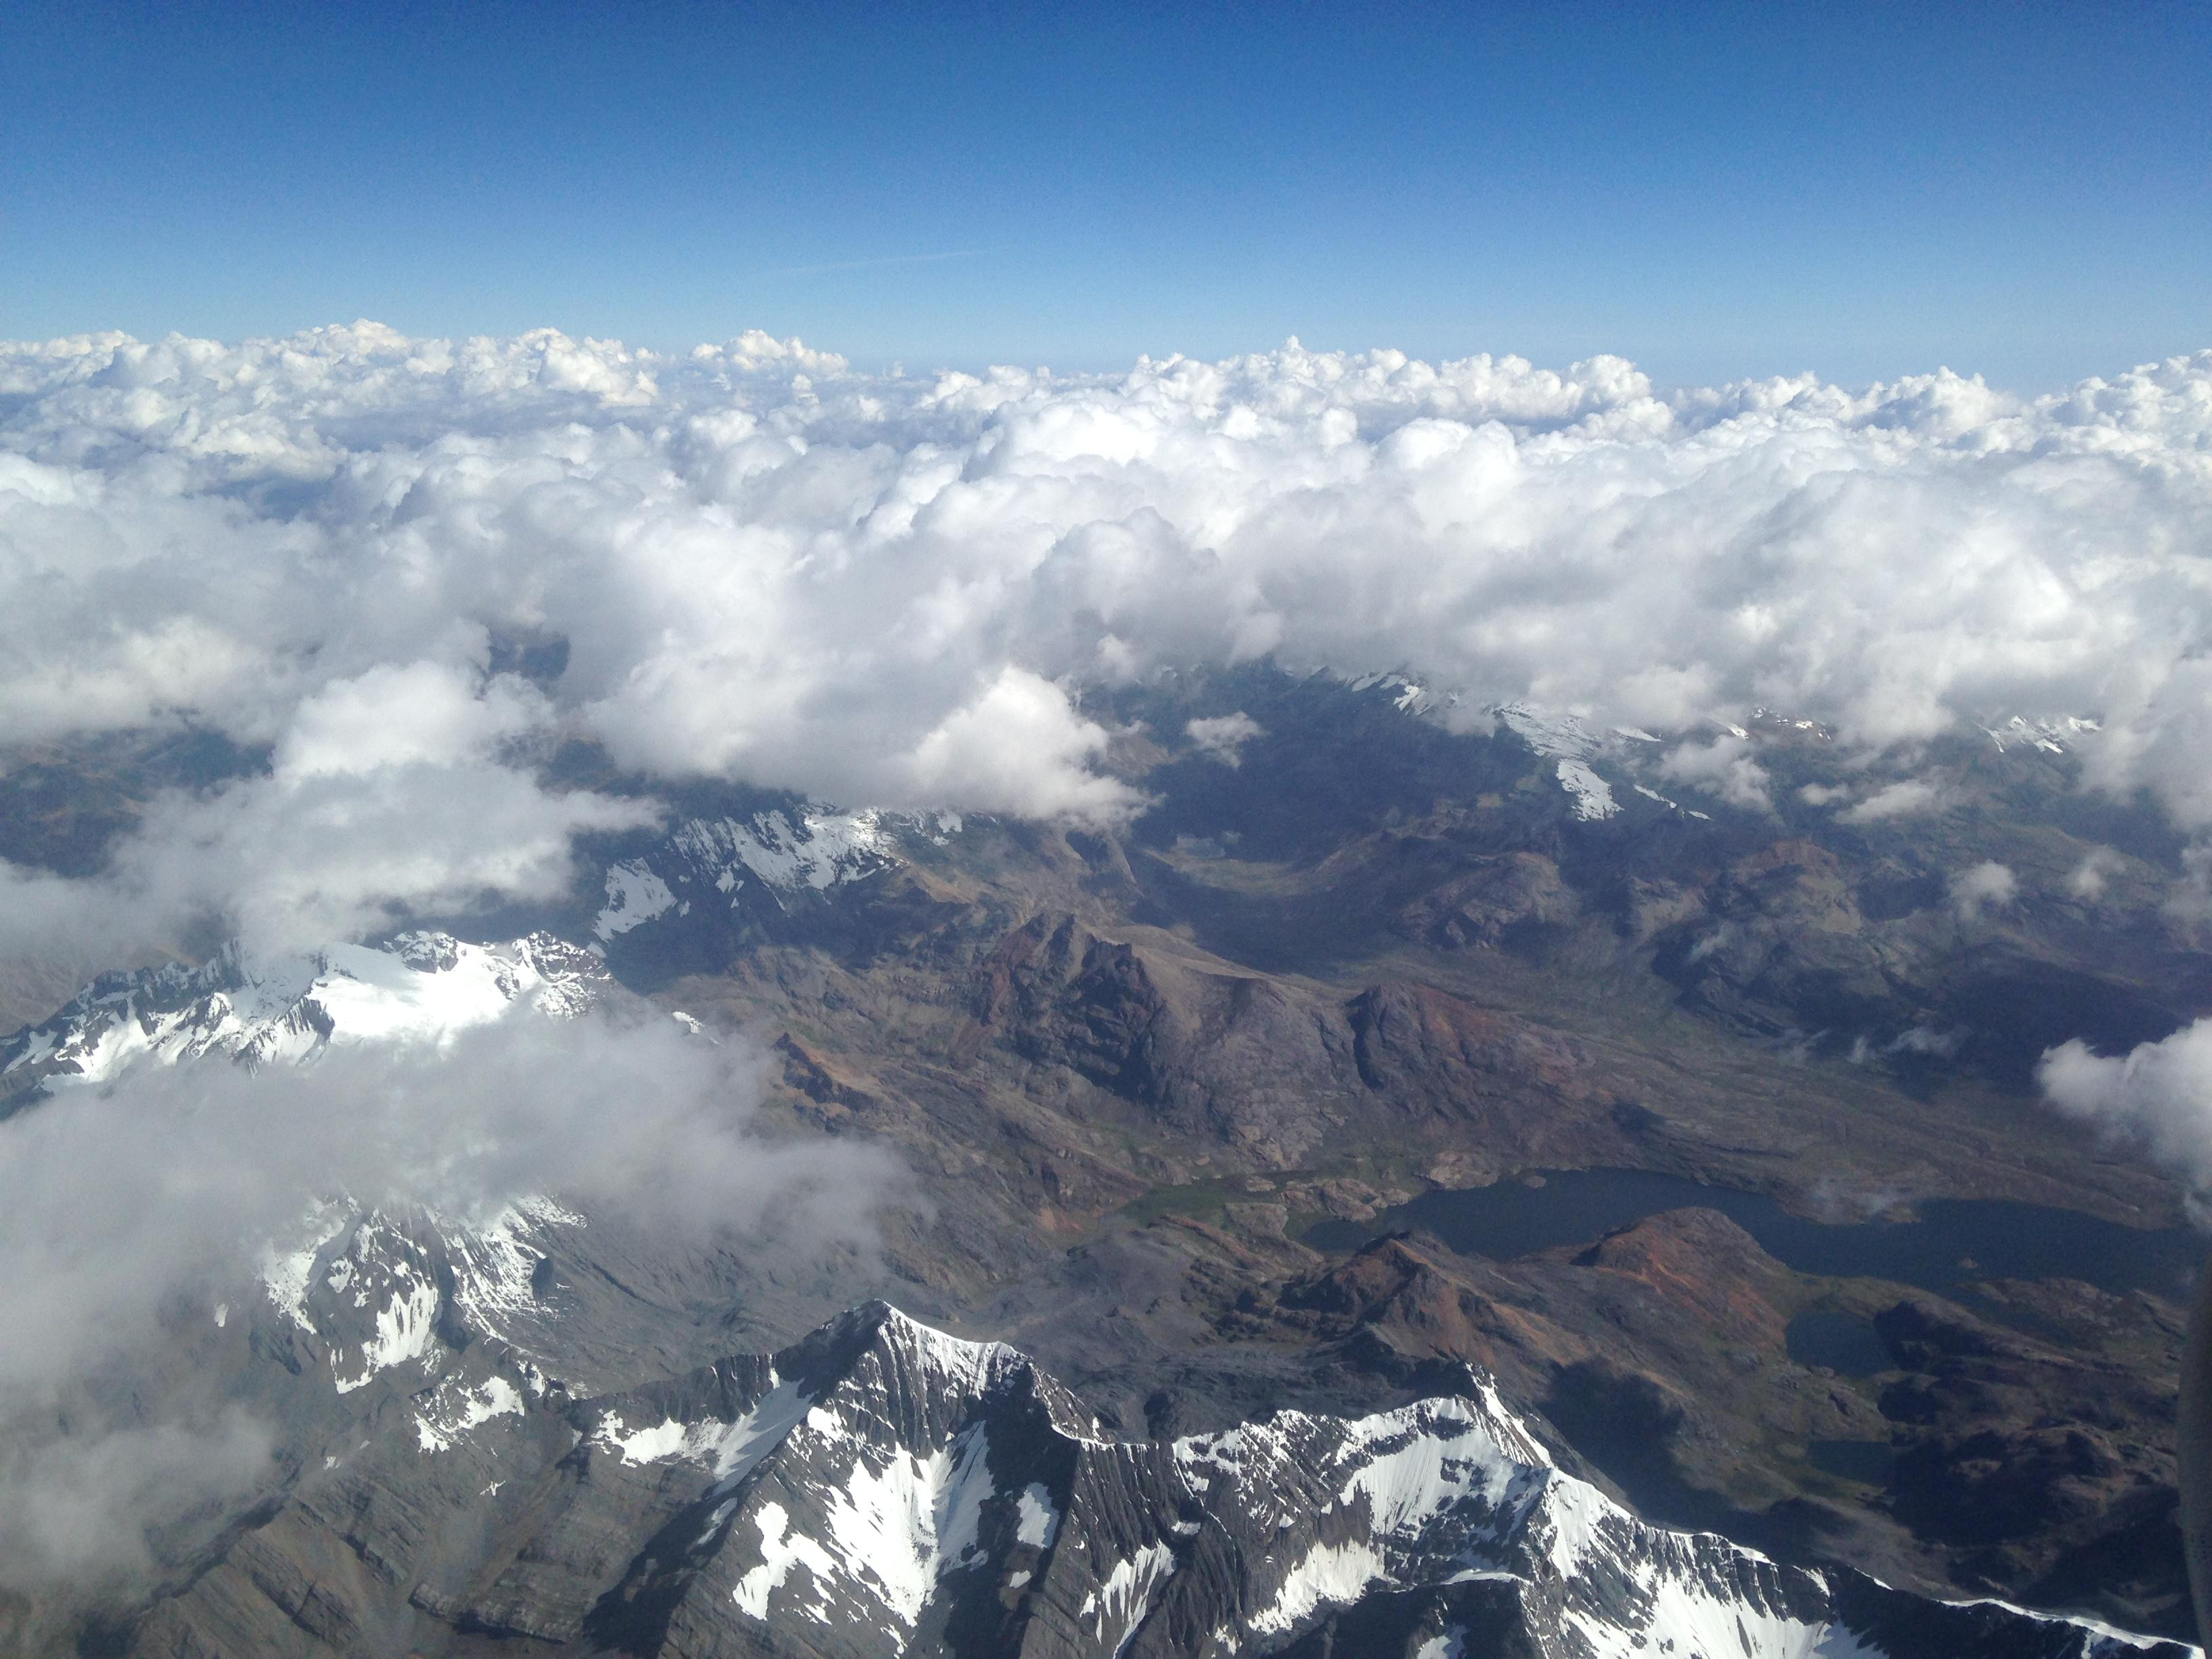 A view from the plane of the snow-capped Andes Mountains